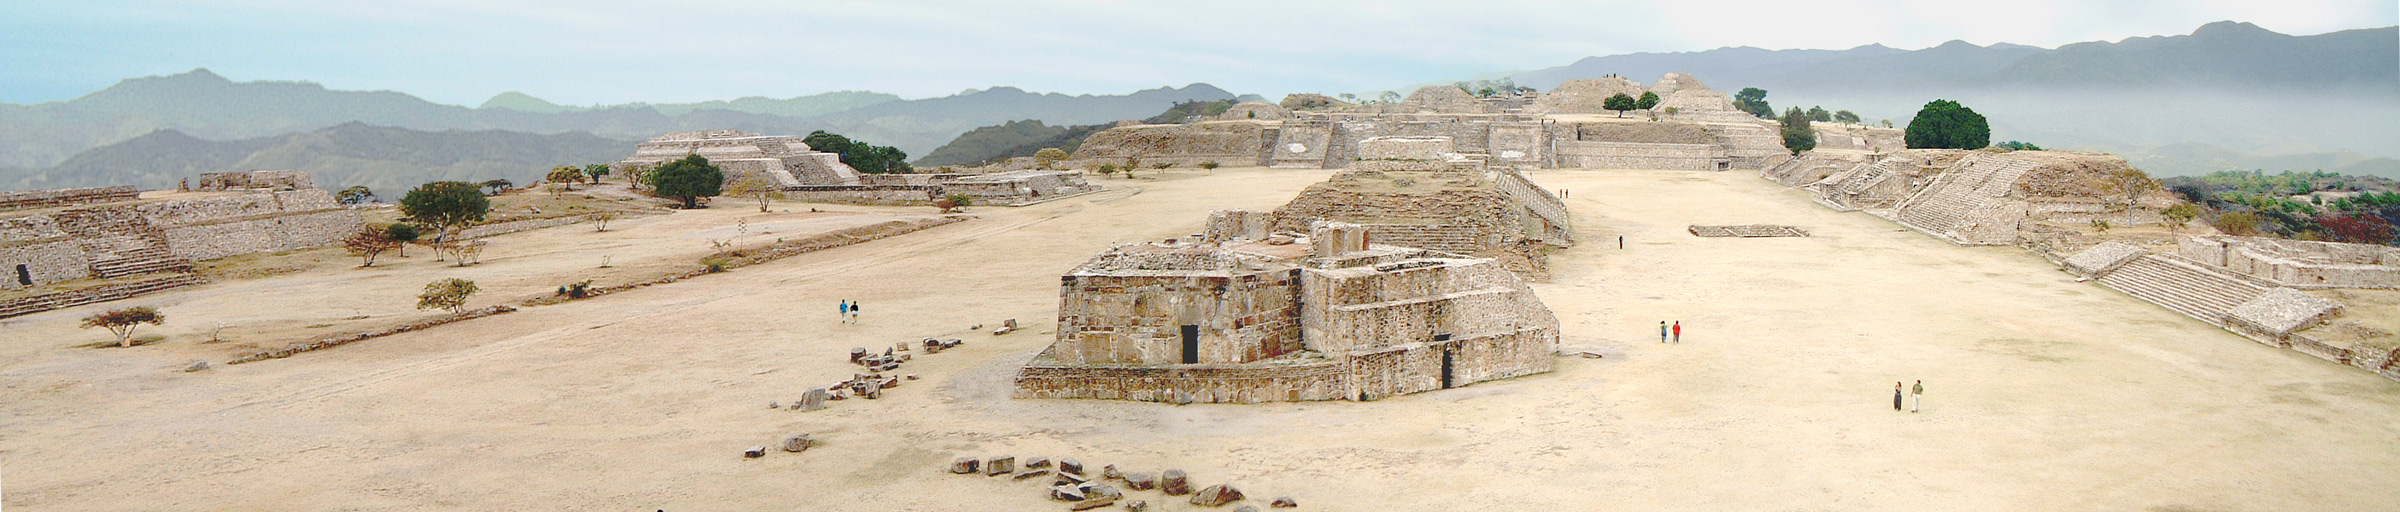 Monte Alban's main plaza looking north, with the Observatory, Building J, centre shot